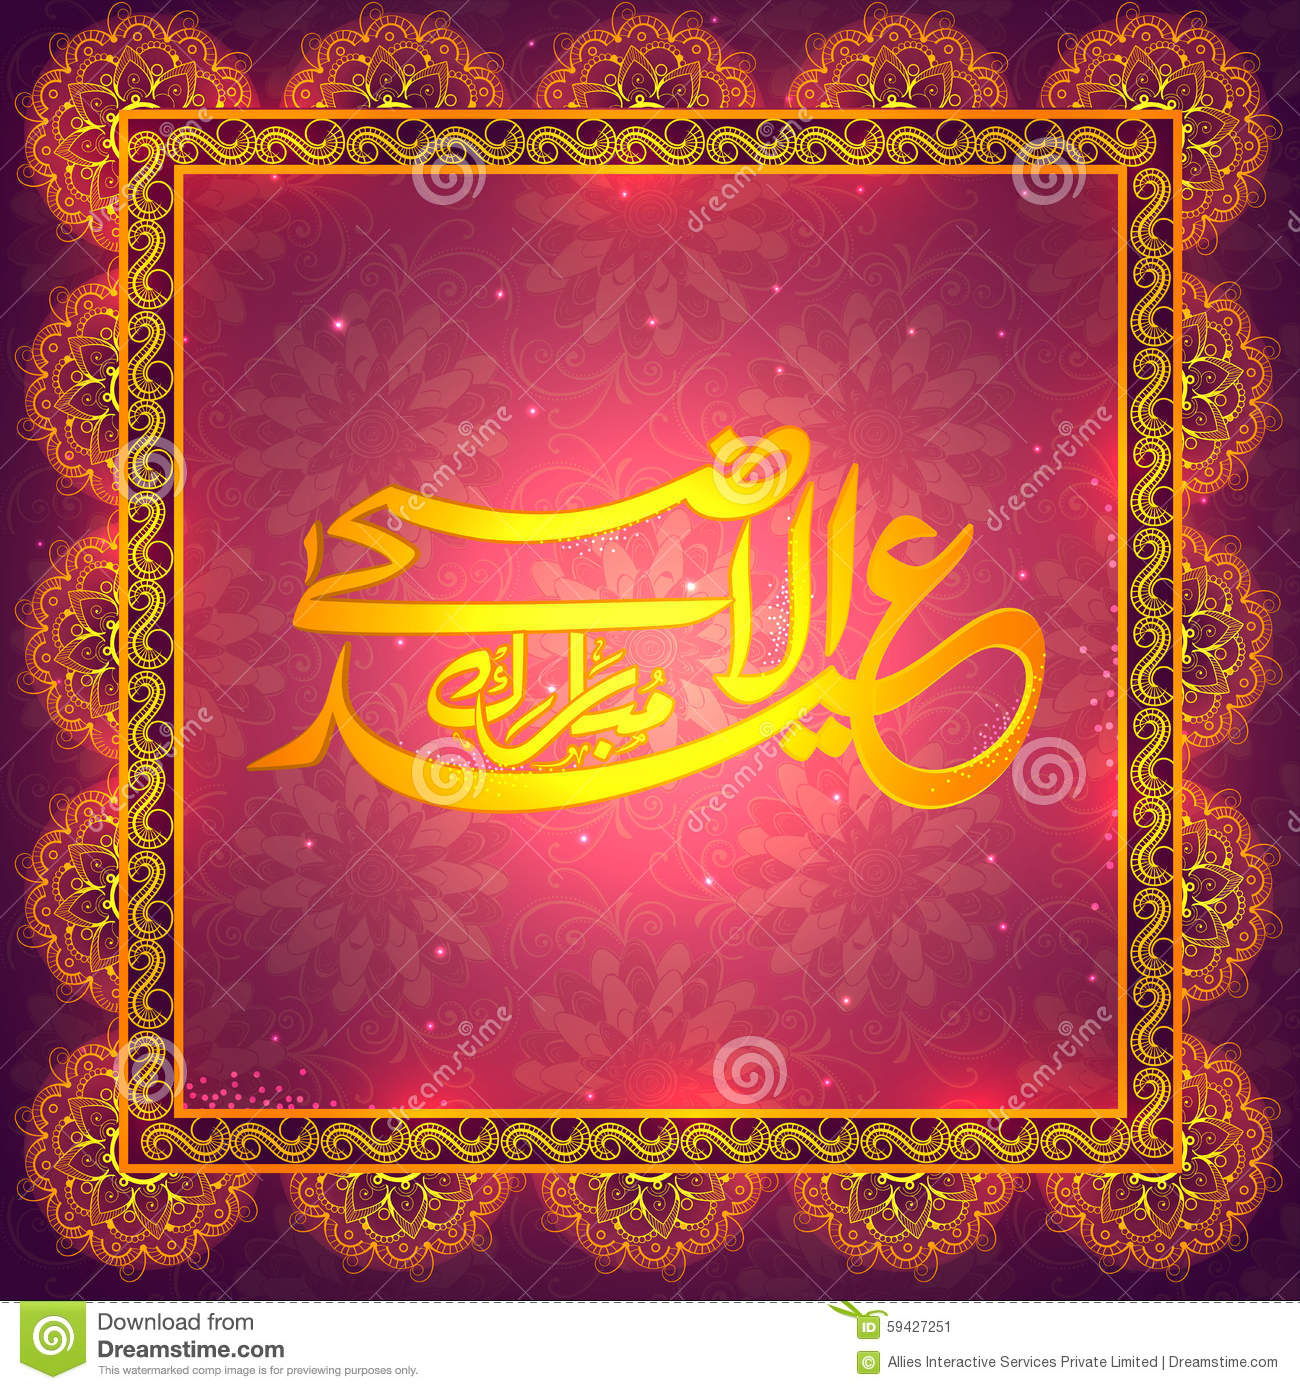 Greeting card with arabic text for eid al adha stock illustration greeting card with arabic text for eid al adha kristyandbryce Image collections